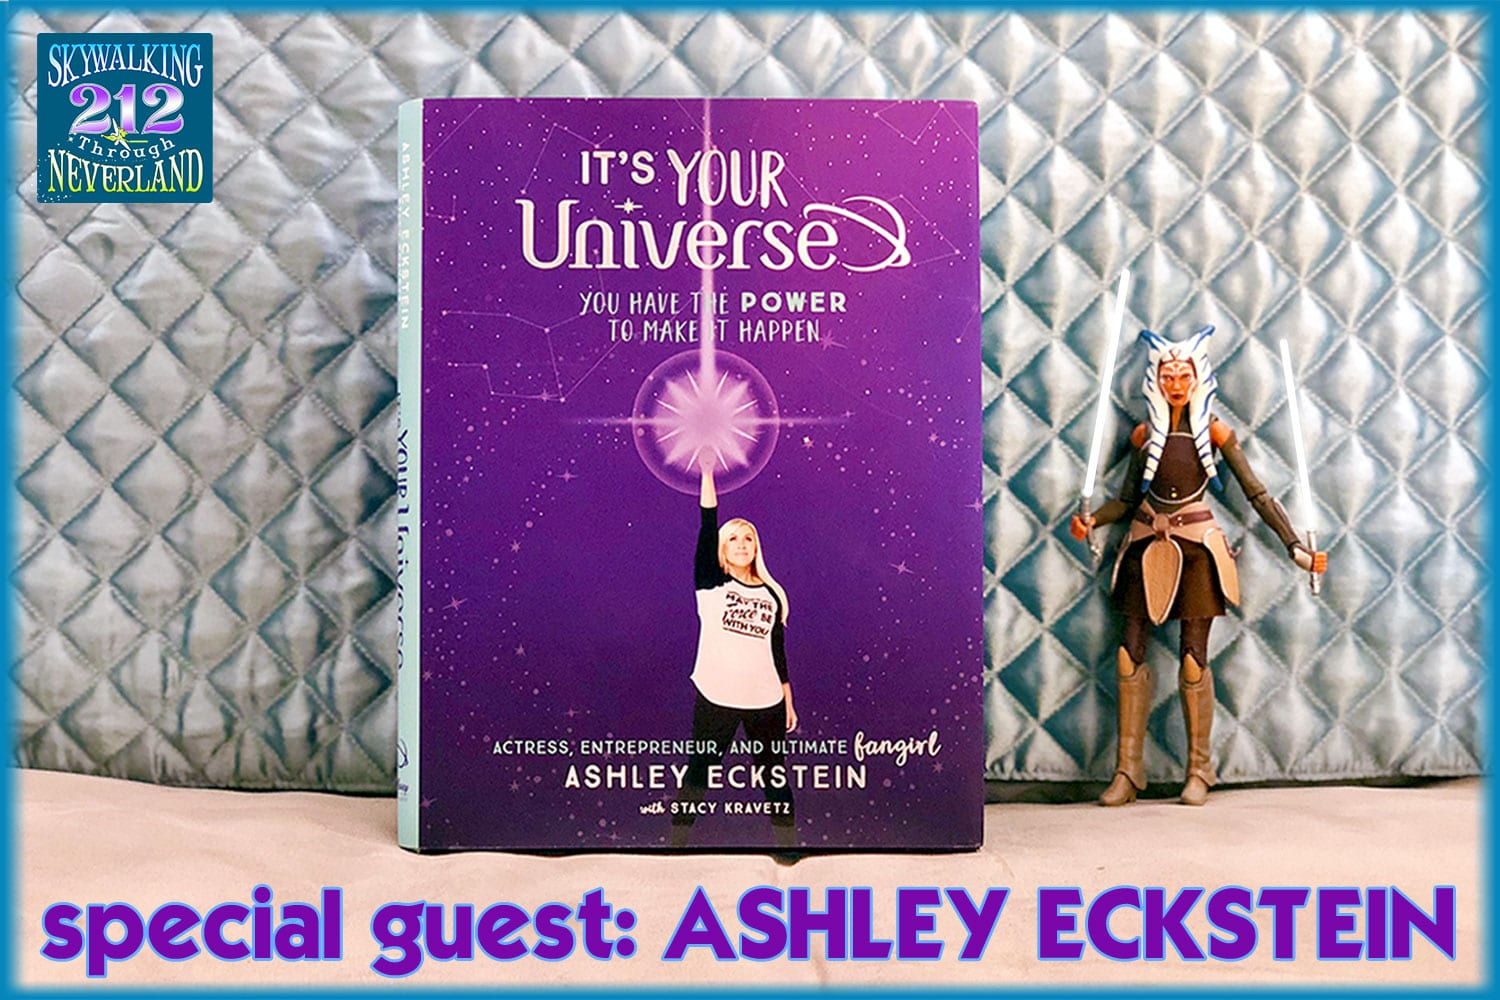 Skywalking Through Neverland #212: Ashley Eckstein #DreamWarrior